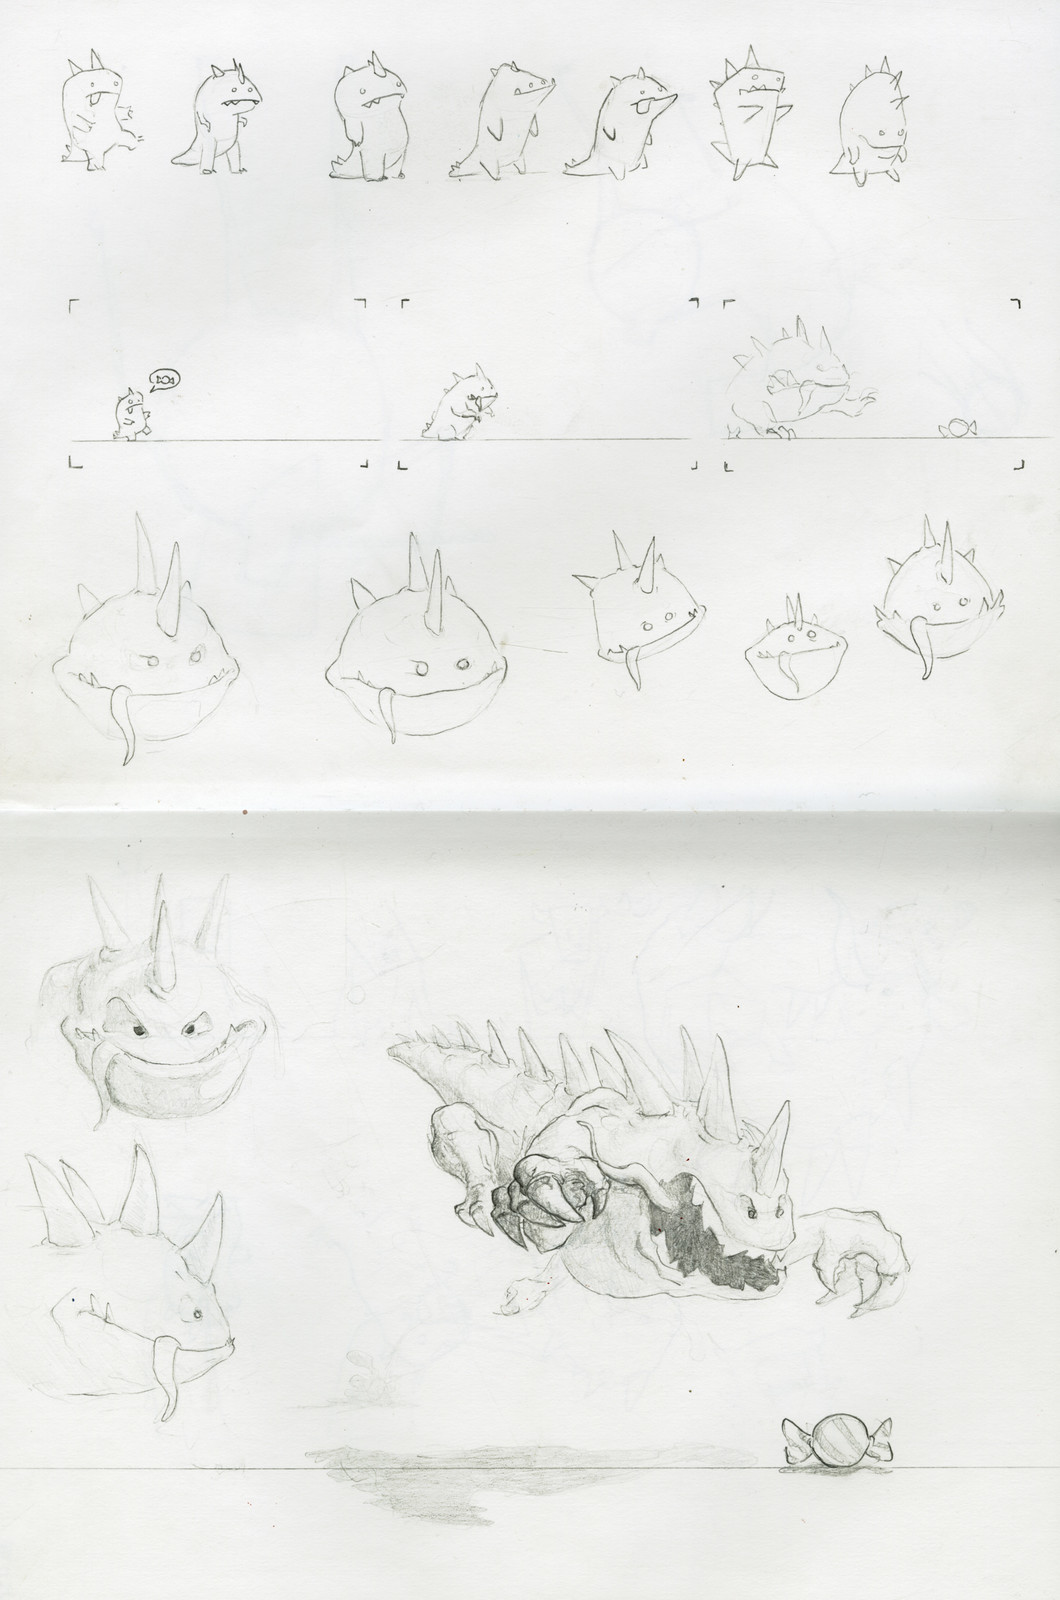 Sketches for character development